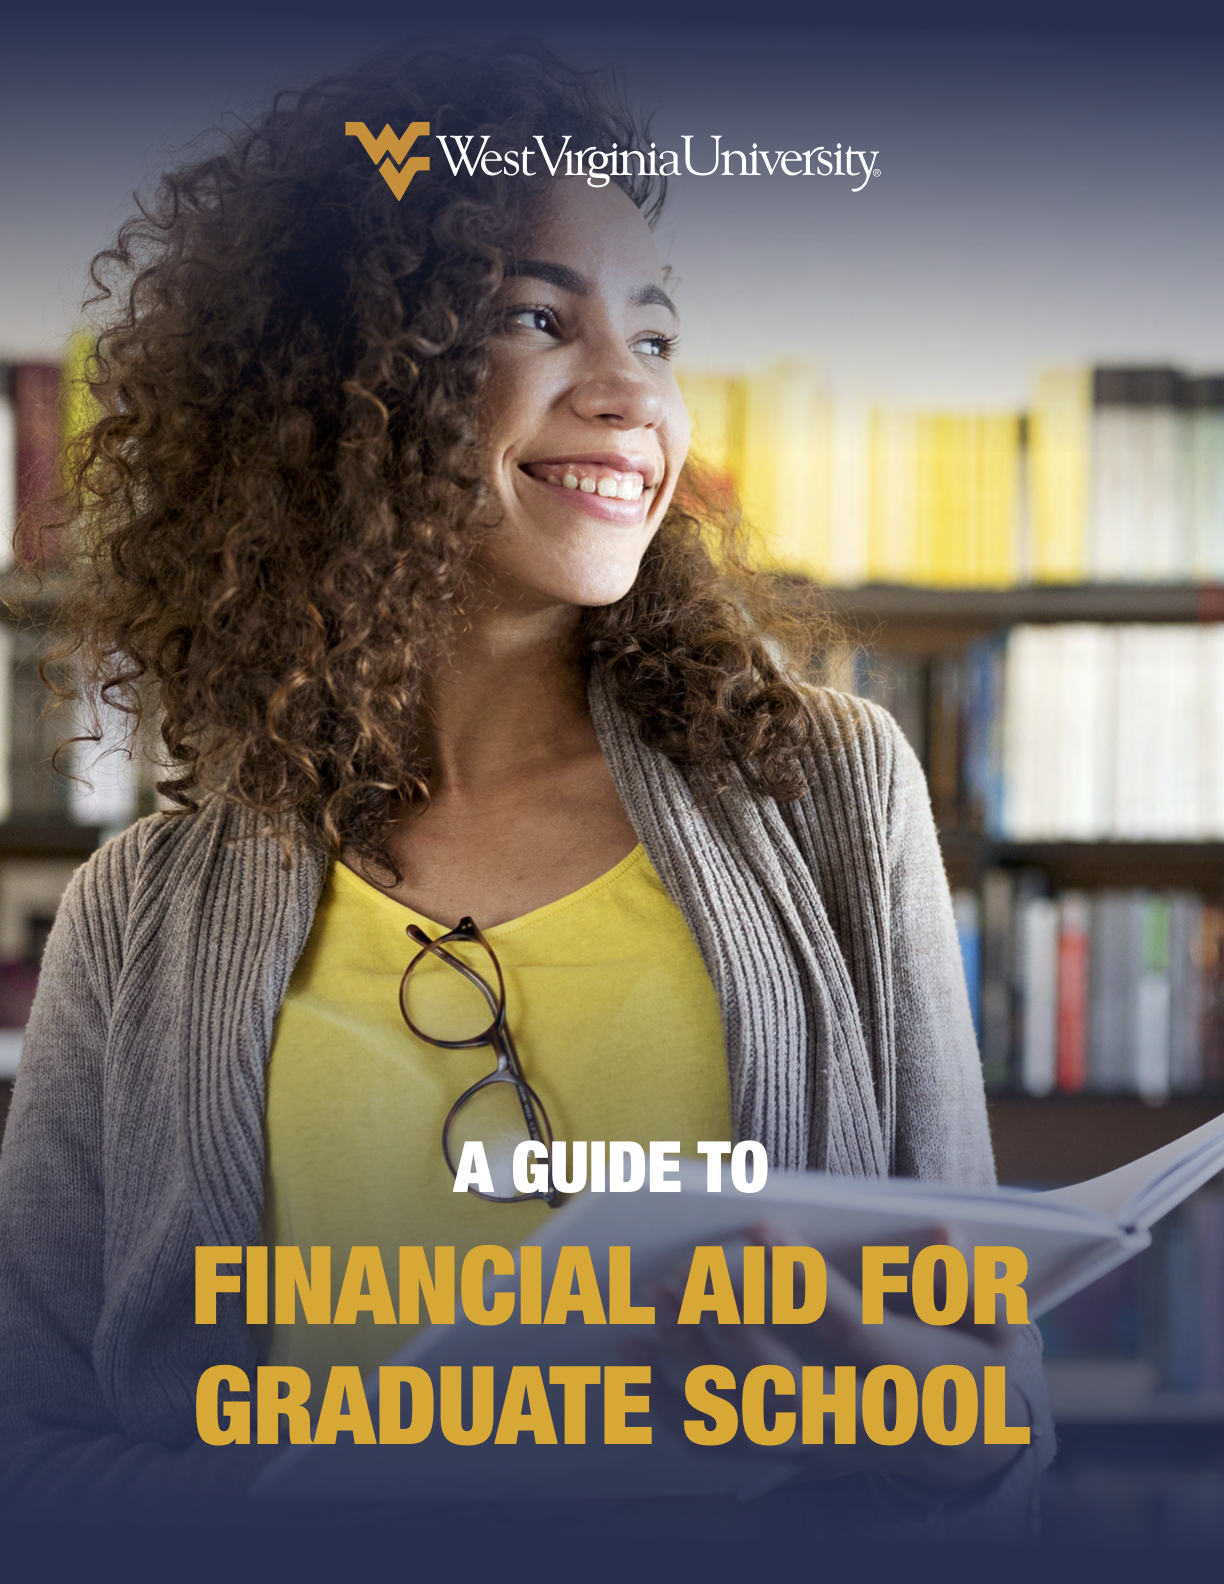 A Guide to Financing Graduate School in 2017-704524-edited.png